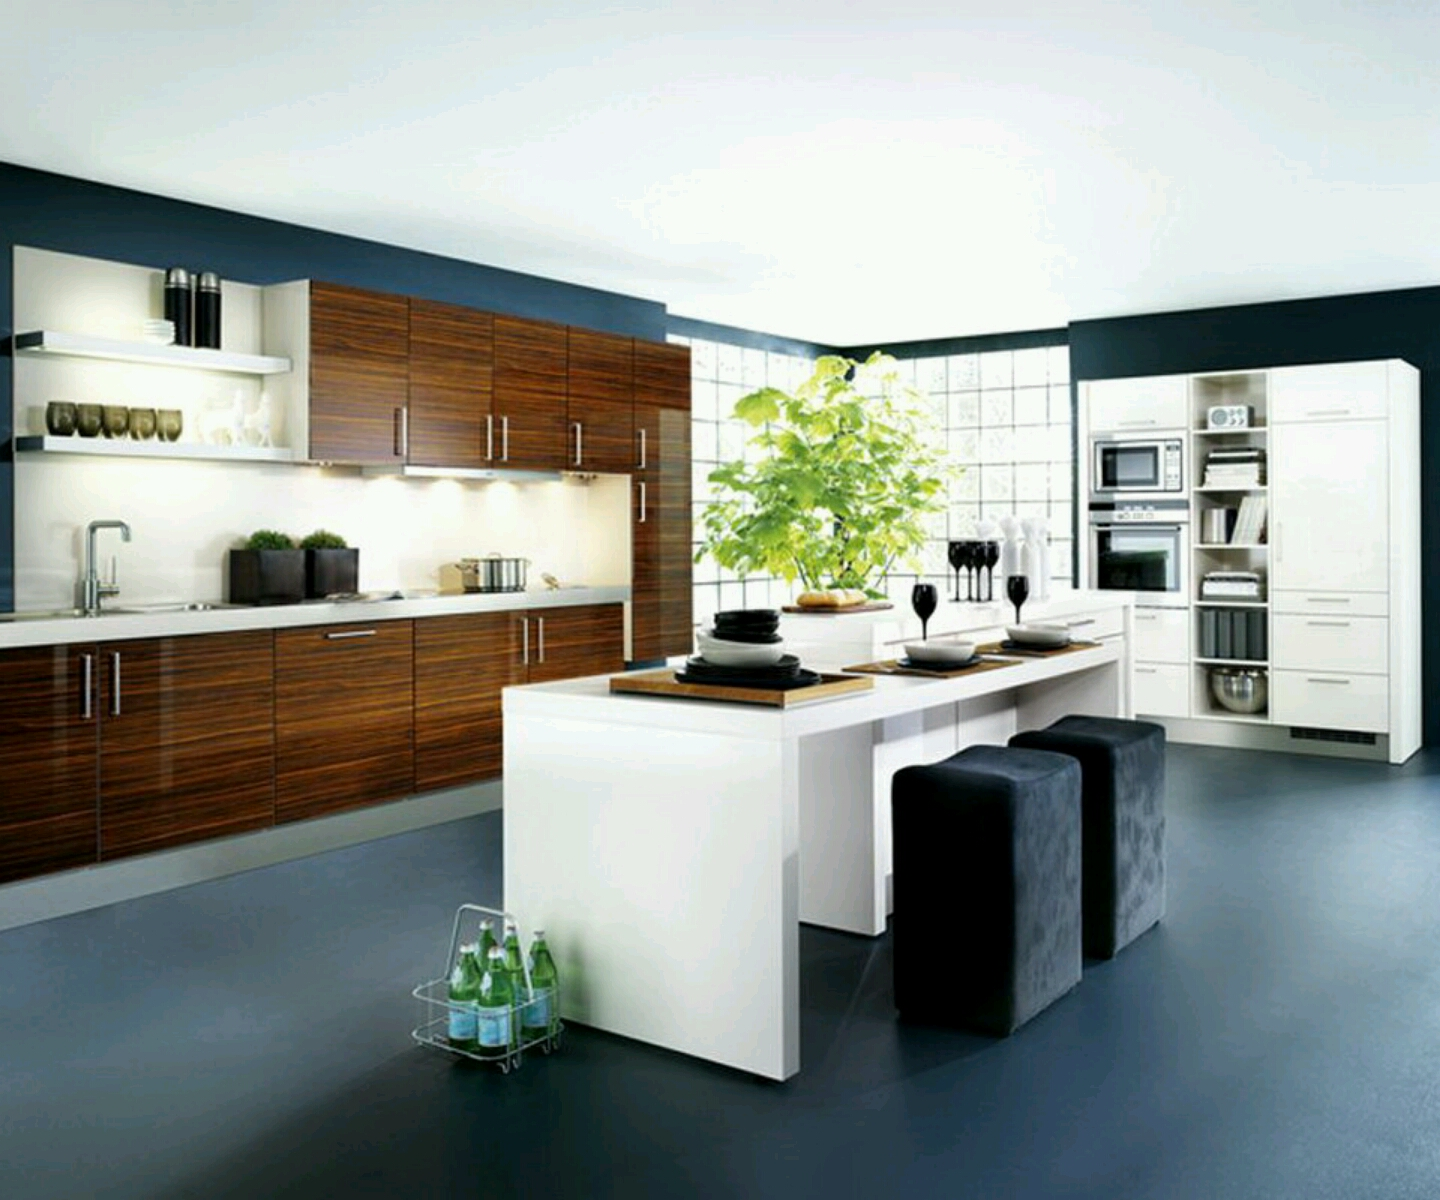 New home designs latest kitchen cabinets designs modern for Kitchen modern design ideas